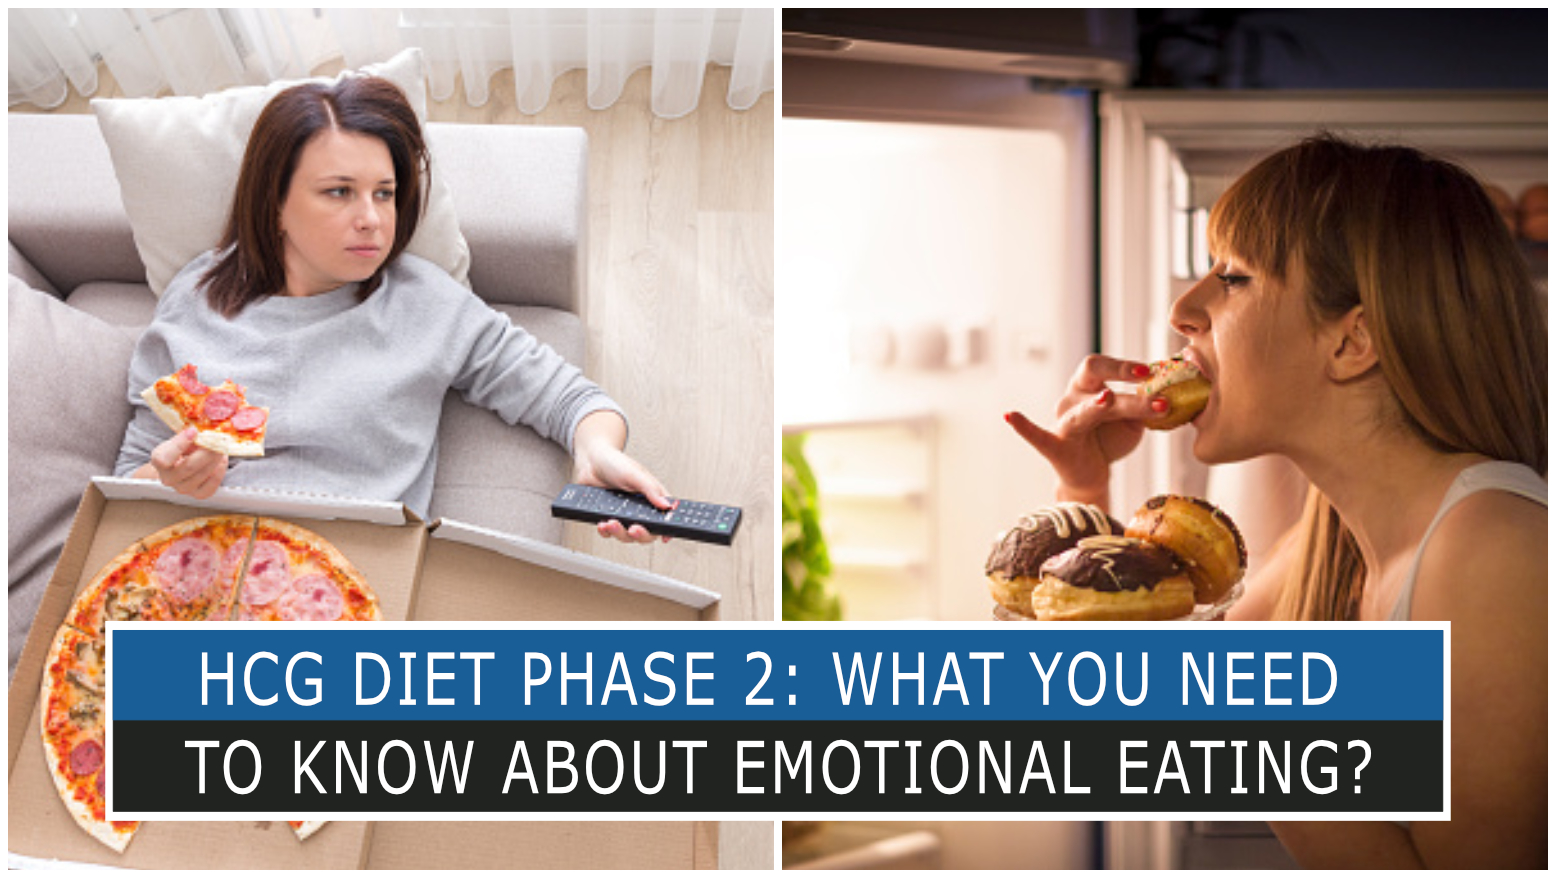 HCG DIET PHASE 2: WHAT YOU NEED TO KNOW ABOUT EMOTIONAL EATING?